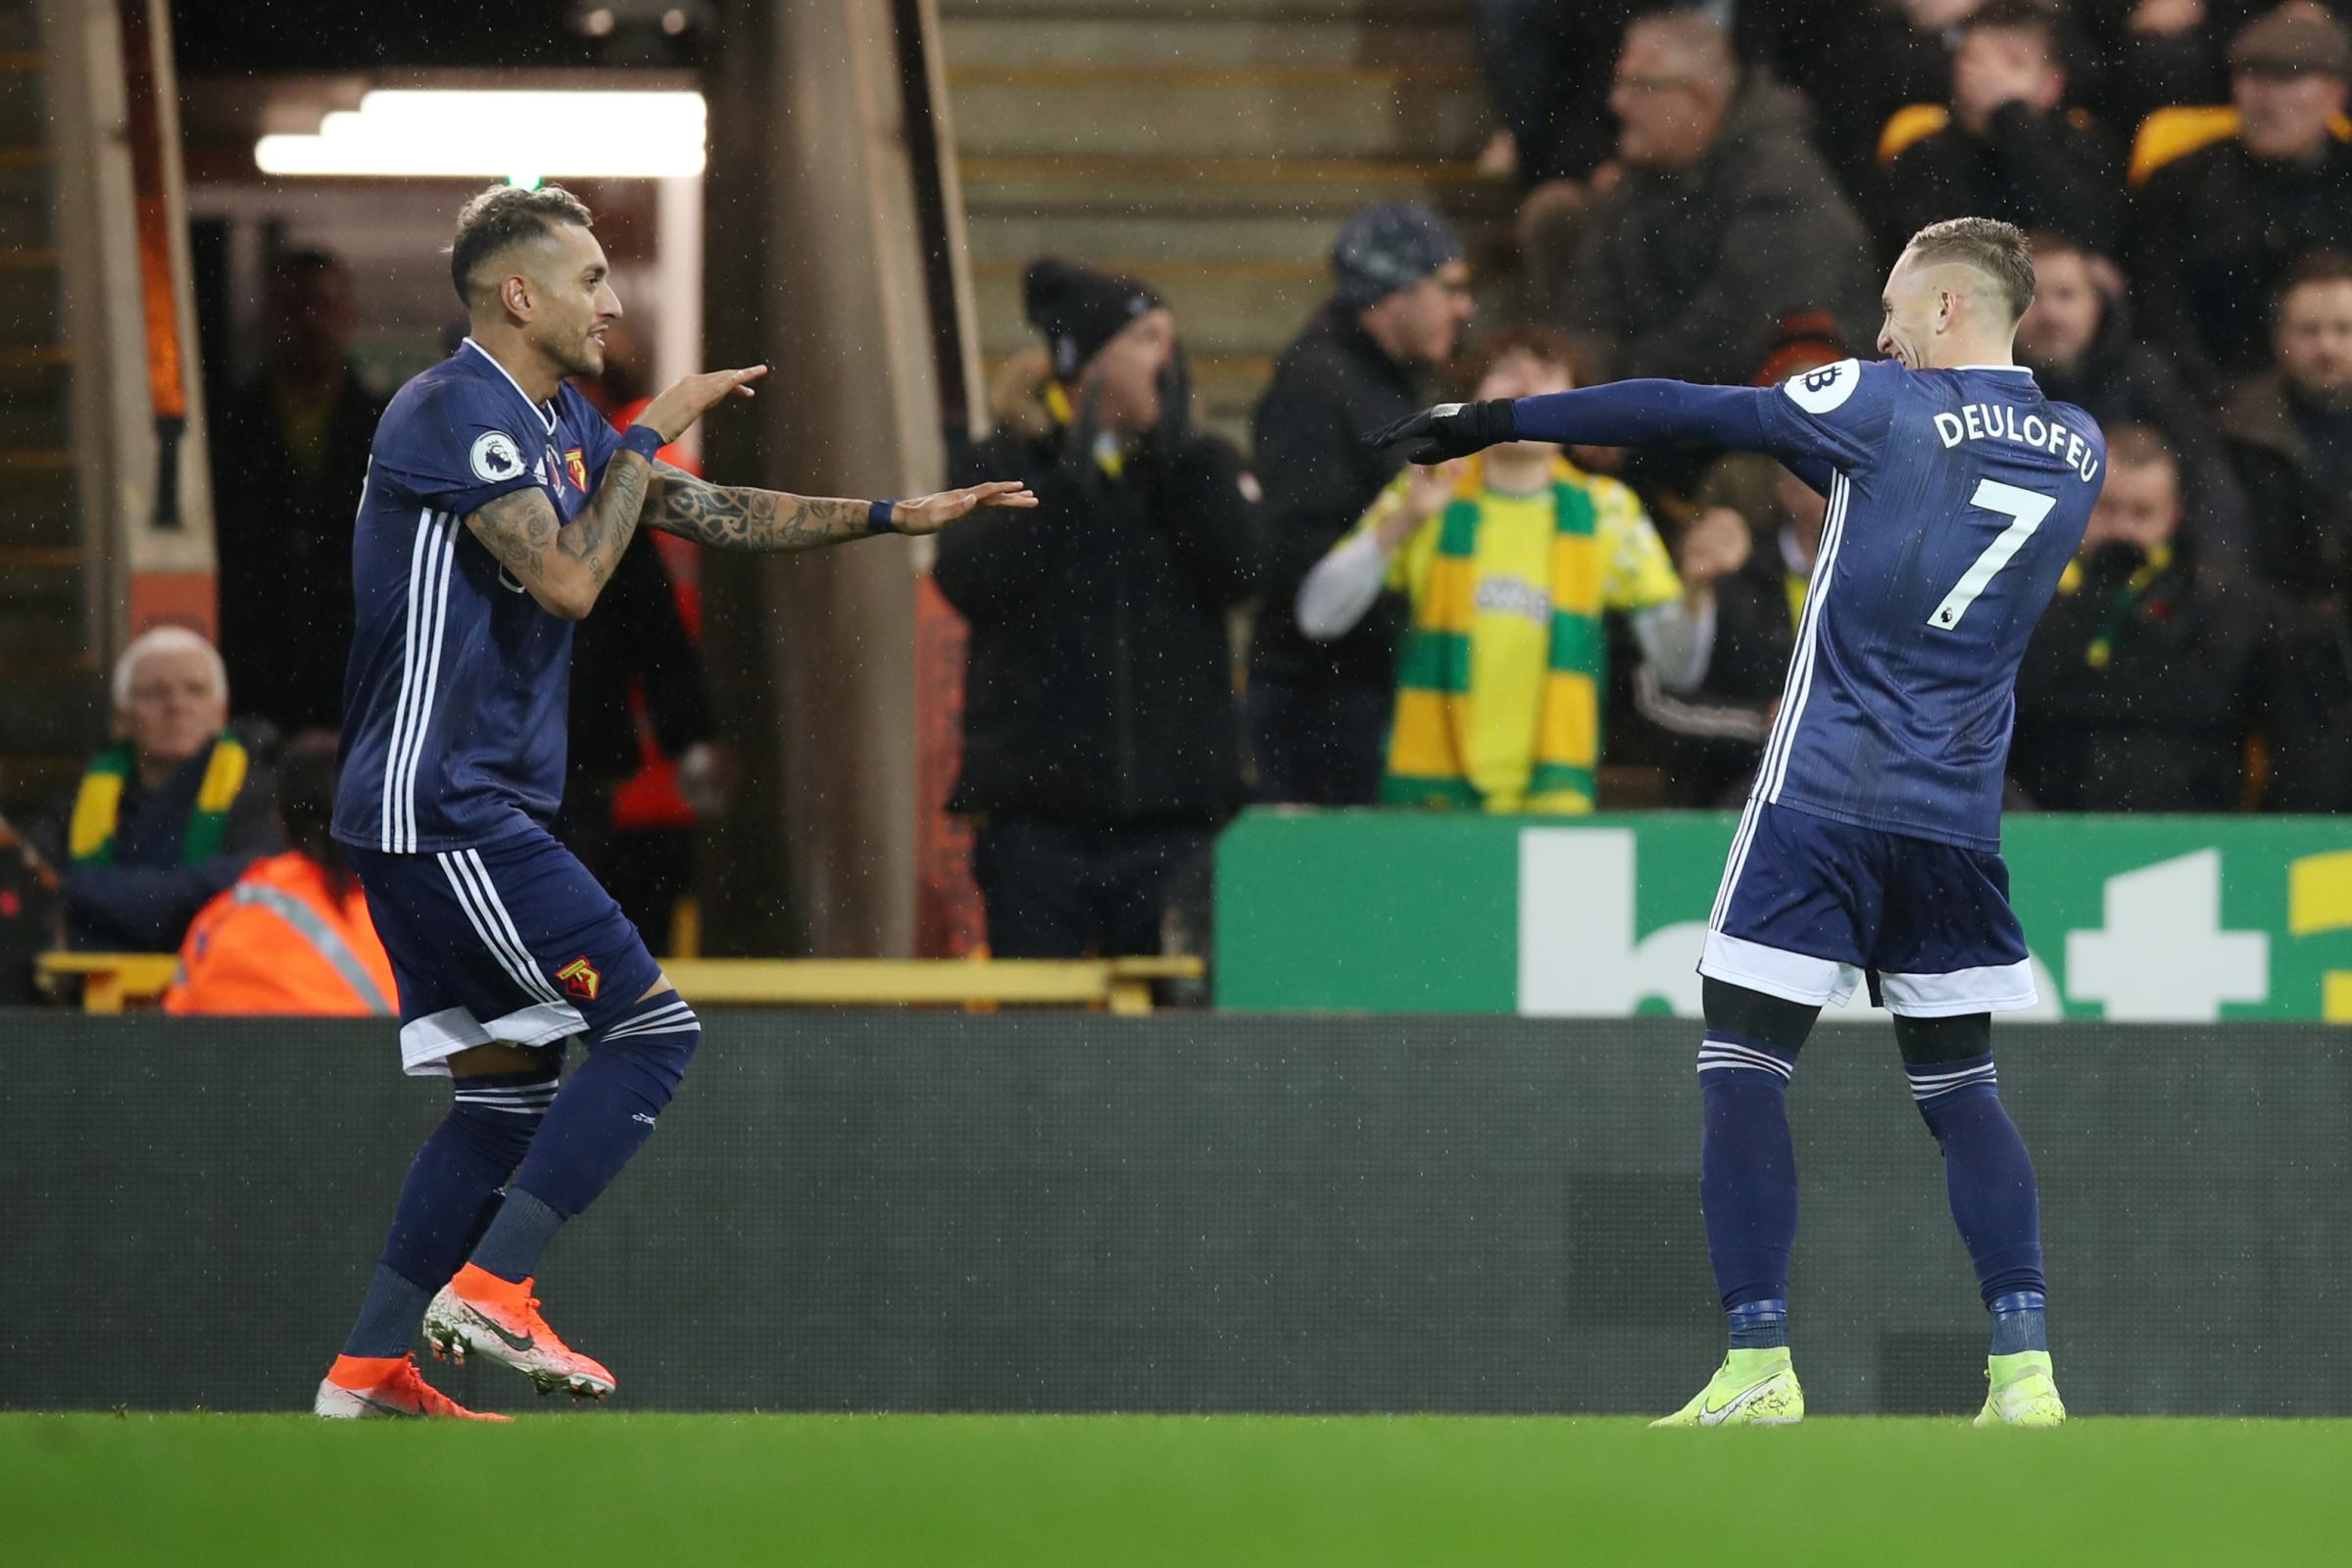 Roberto Pereyra will not play for Argentina after an injury during Watford's win over Norwich City